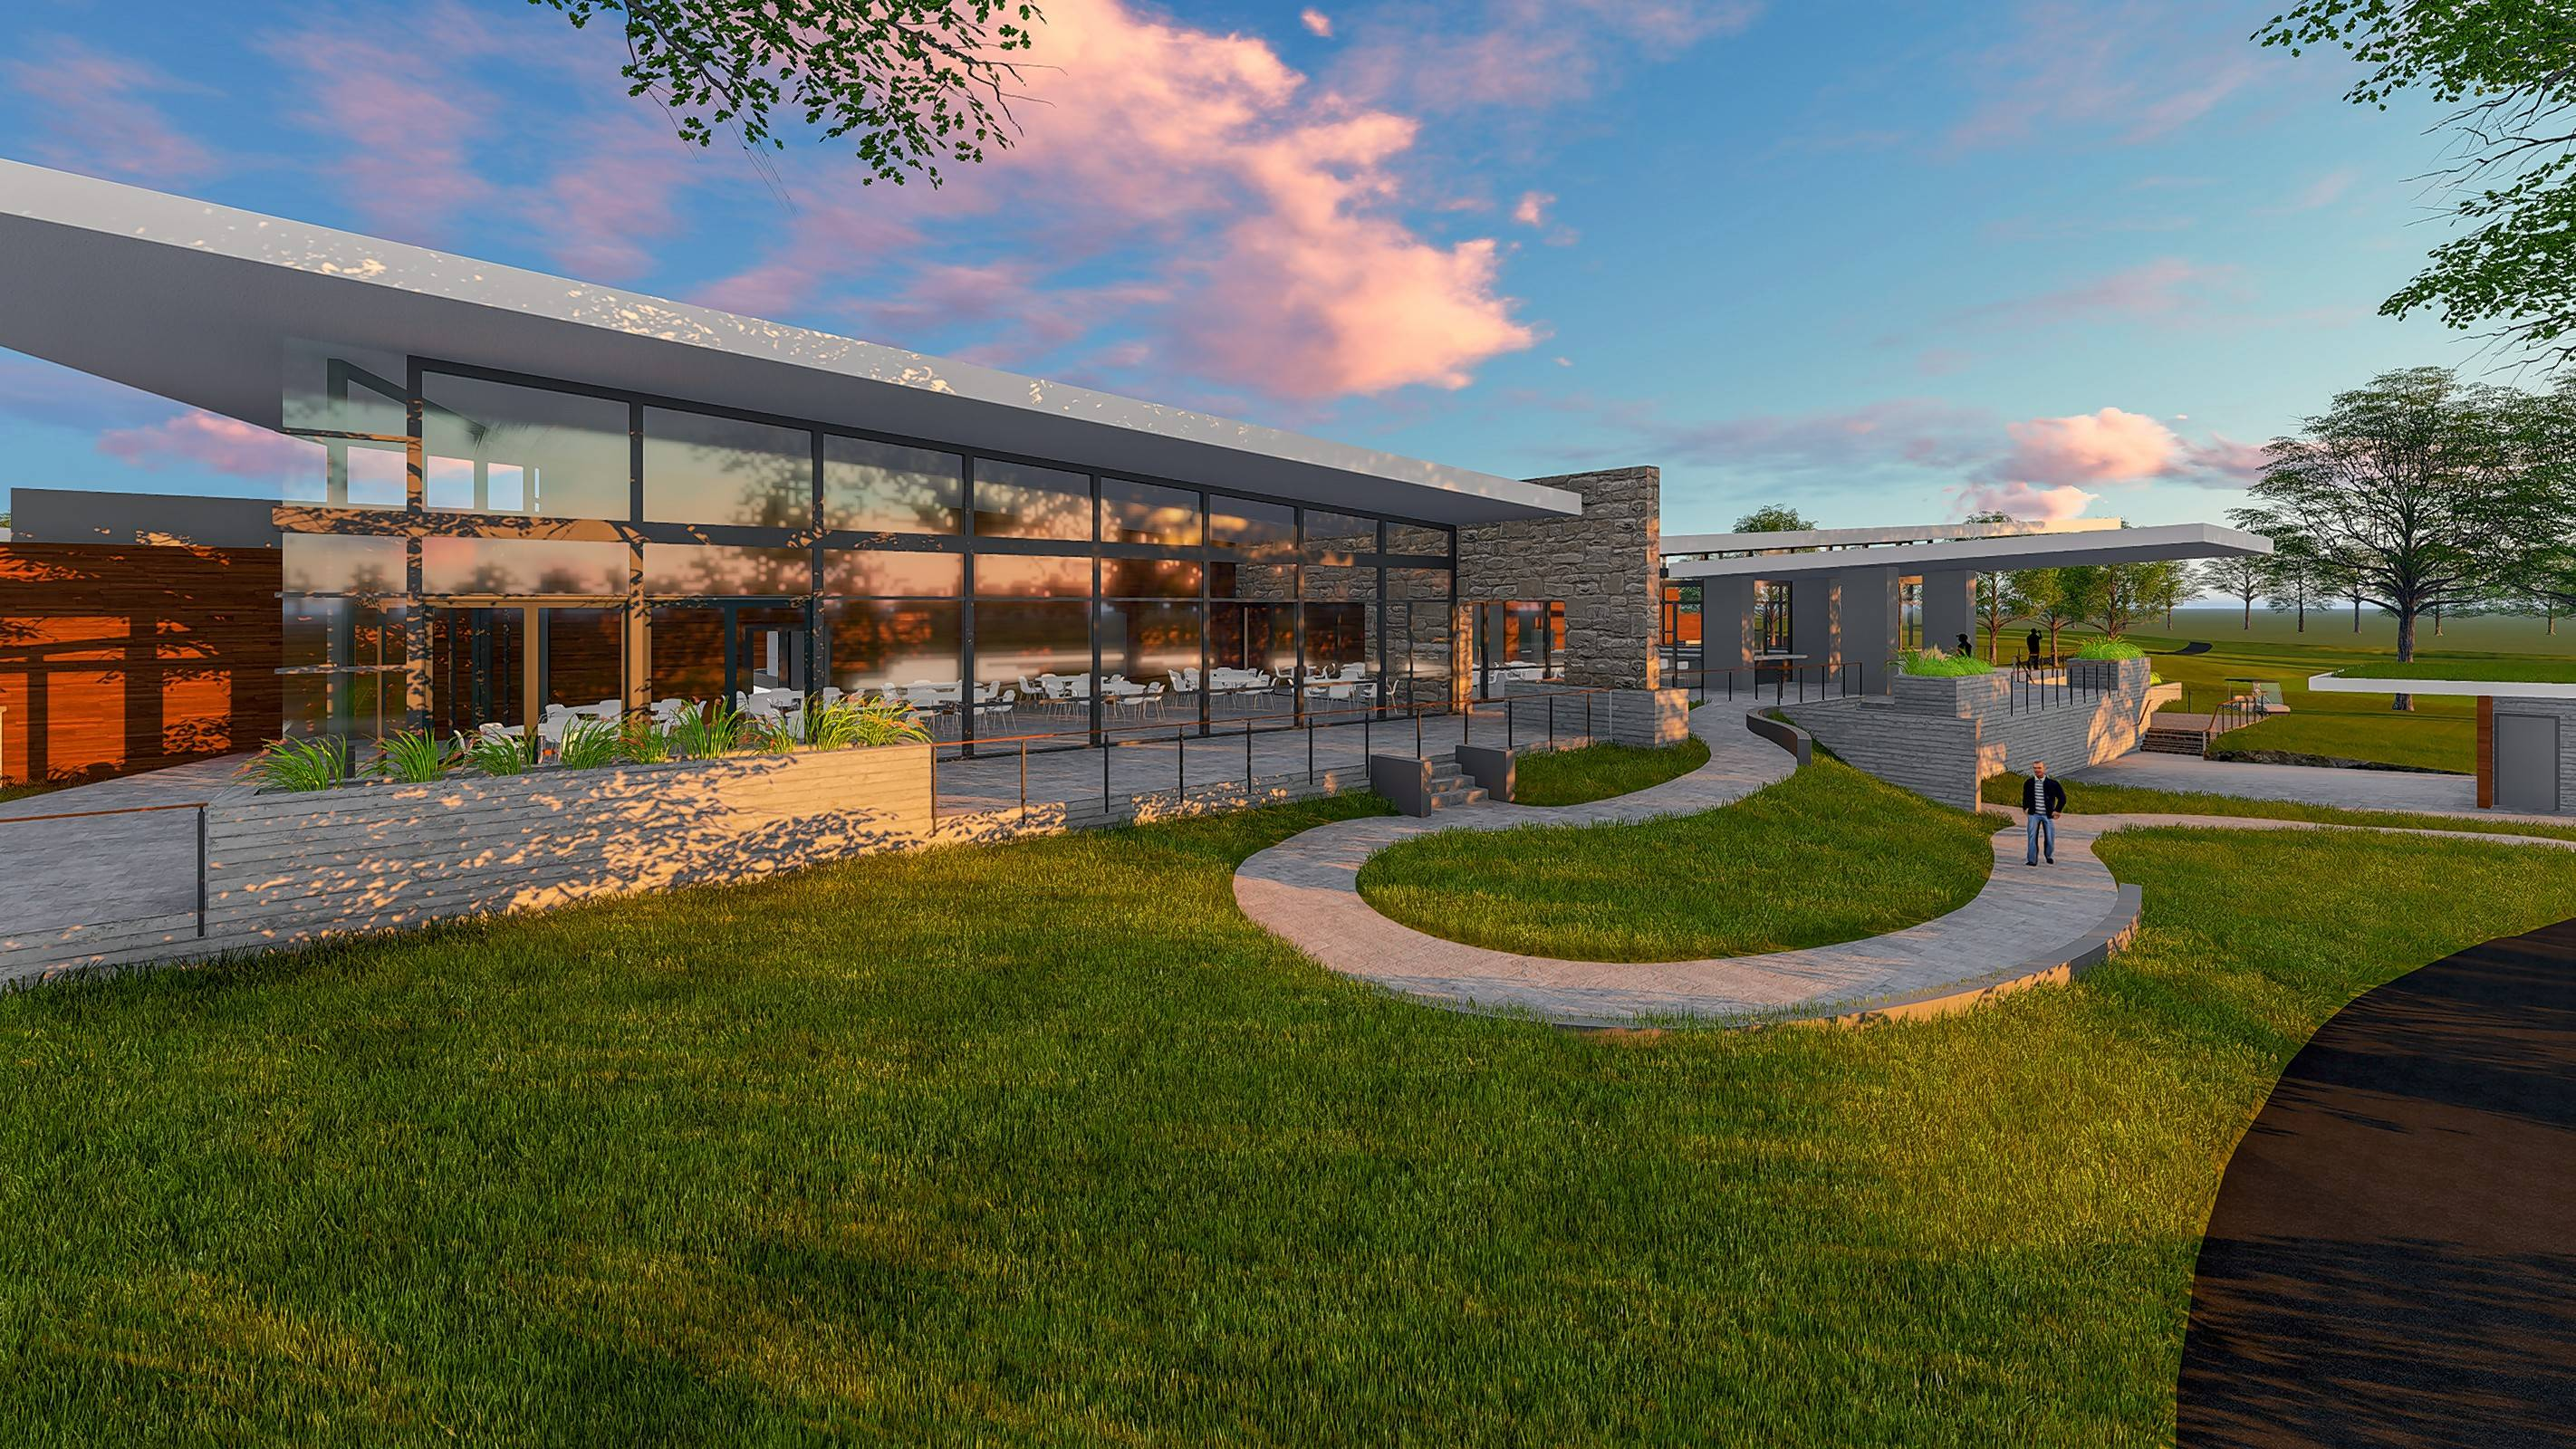 DuPage forest preserve commissioners are considering whether to build a clubhouse at The Preserve at Oak Meadows in Addison. The roughly 18,000-square-foot building would have a pro shop, a restaurant and bar, and outdoor terraces.